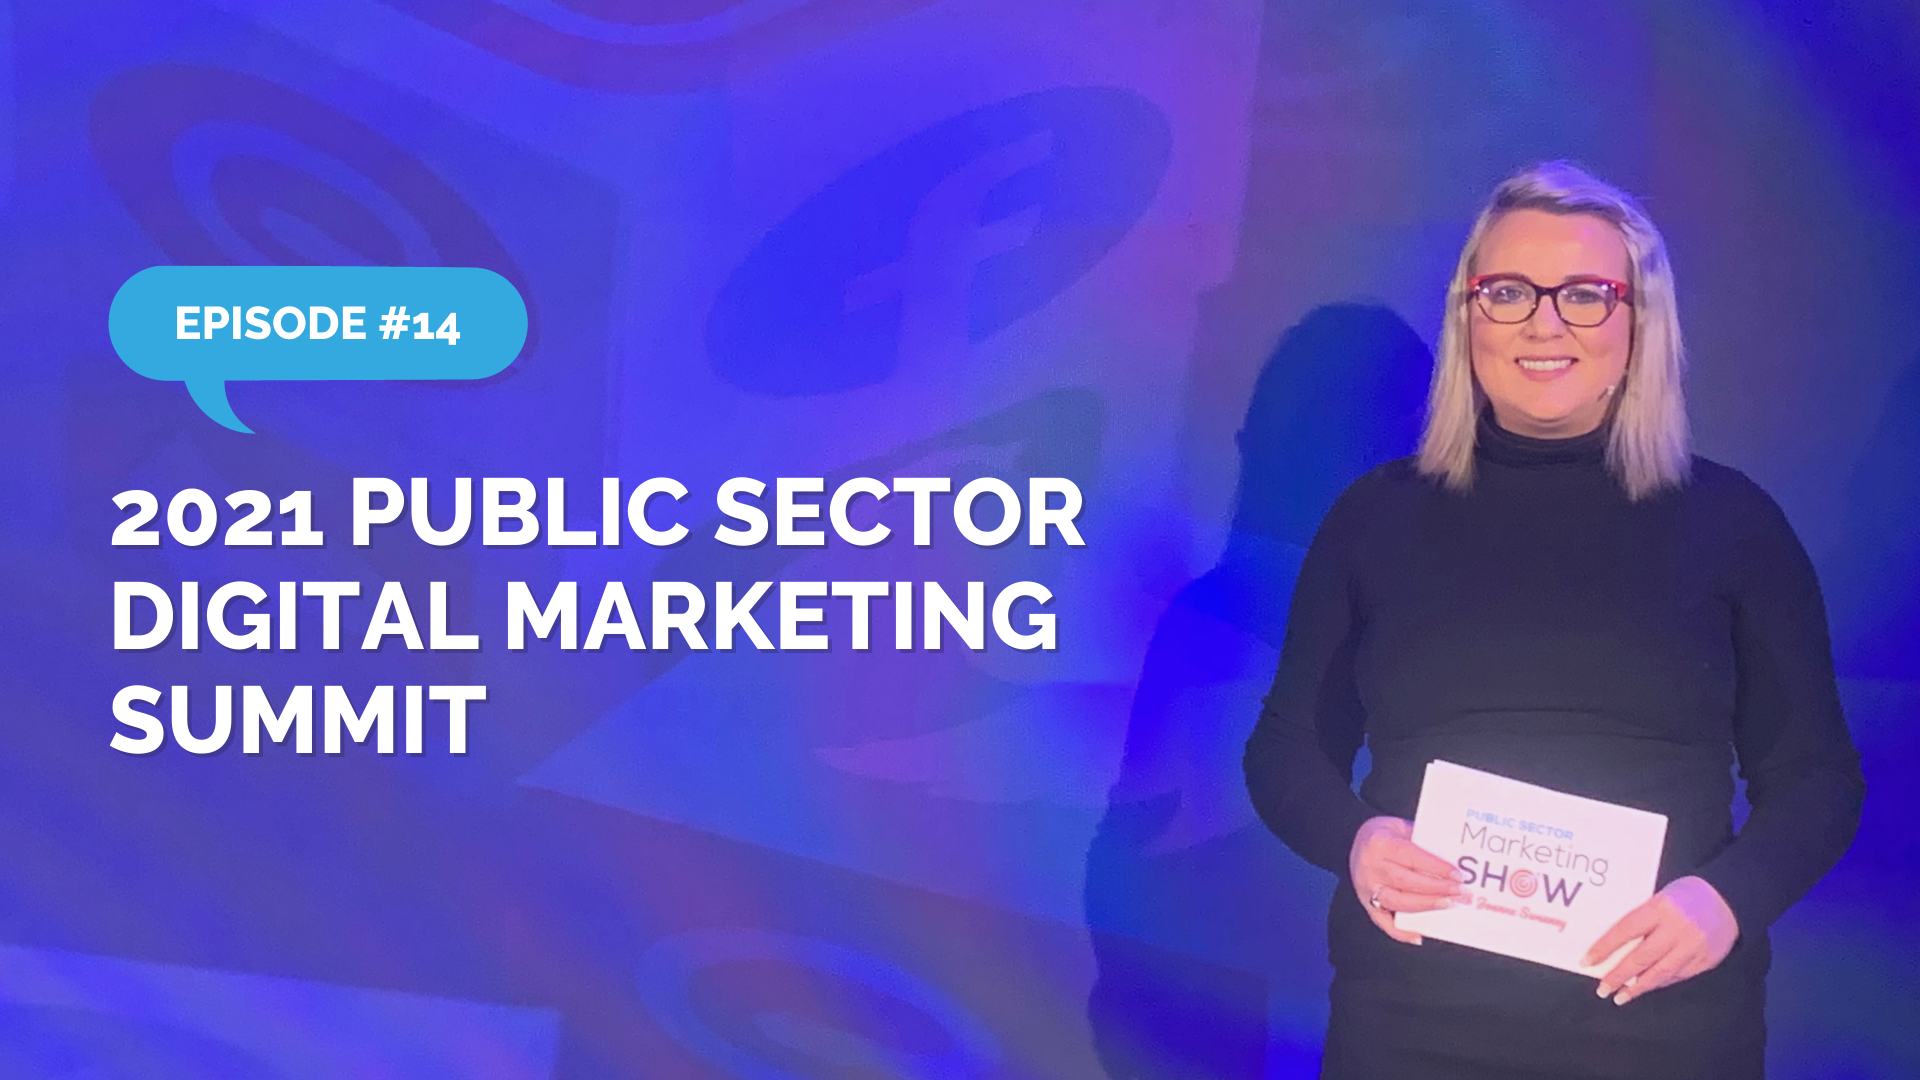 Episode 14 - Behind the Scenes of the 2021 Public Sector Digital Marketing Summit